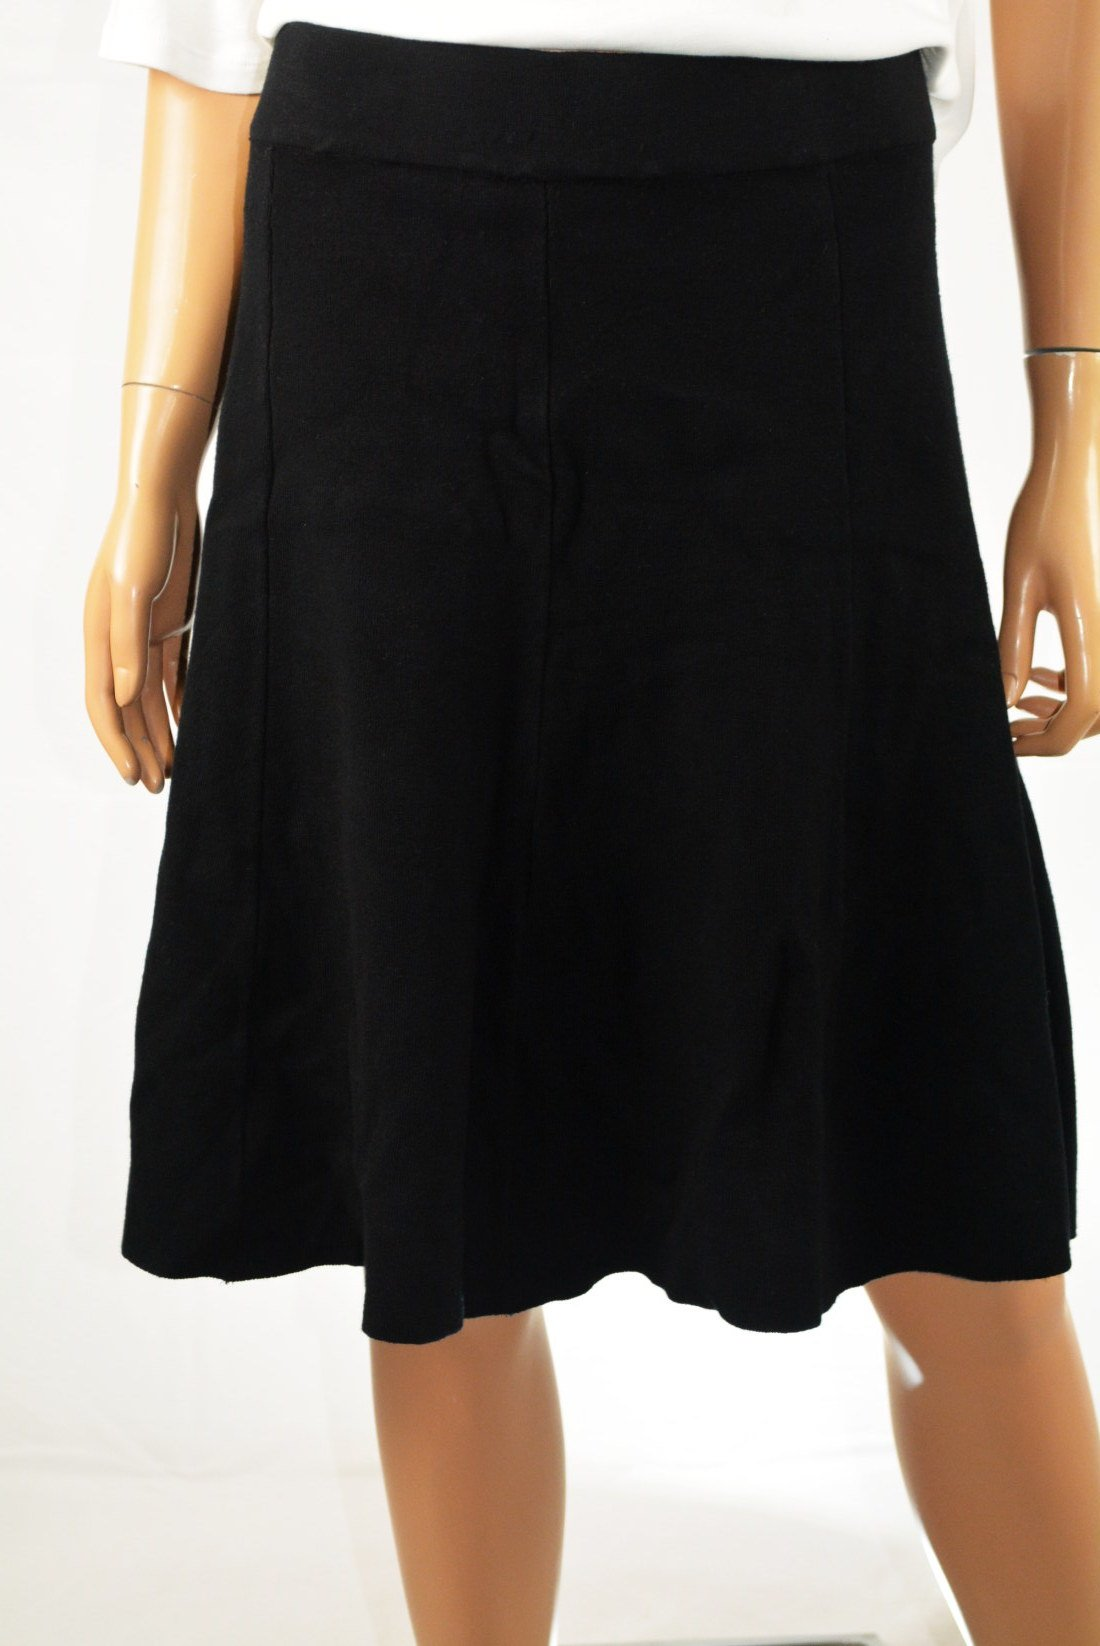 Alfani Women's Black Pull On Knit Fit&Flare A-Line Sweater Skirt  L - evorr.com